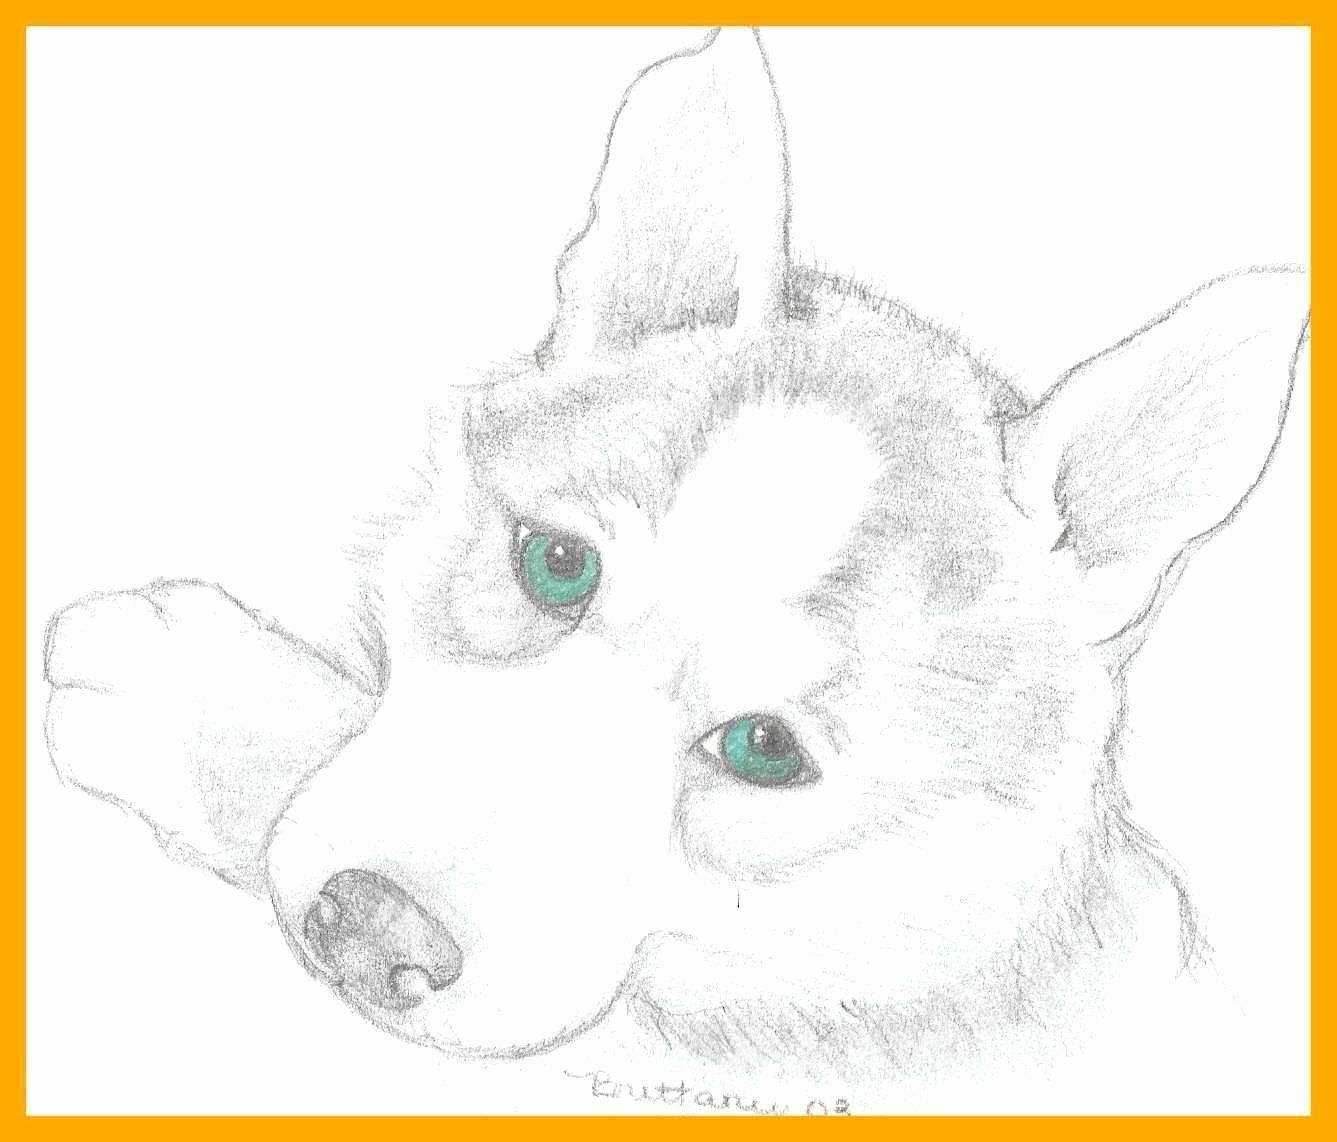 Country Girl Coloring Pages New Engrossing Husky Coloring Pages Flingtheoryub Dog Coloring Page Puppy Coloring Pages Animal Coloring Books [ 1142 x 1337 Pixel ]